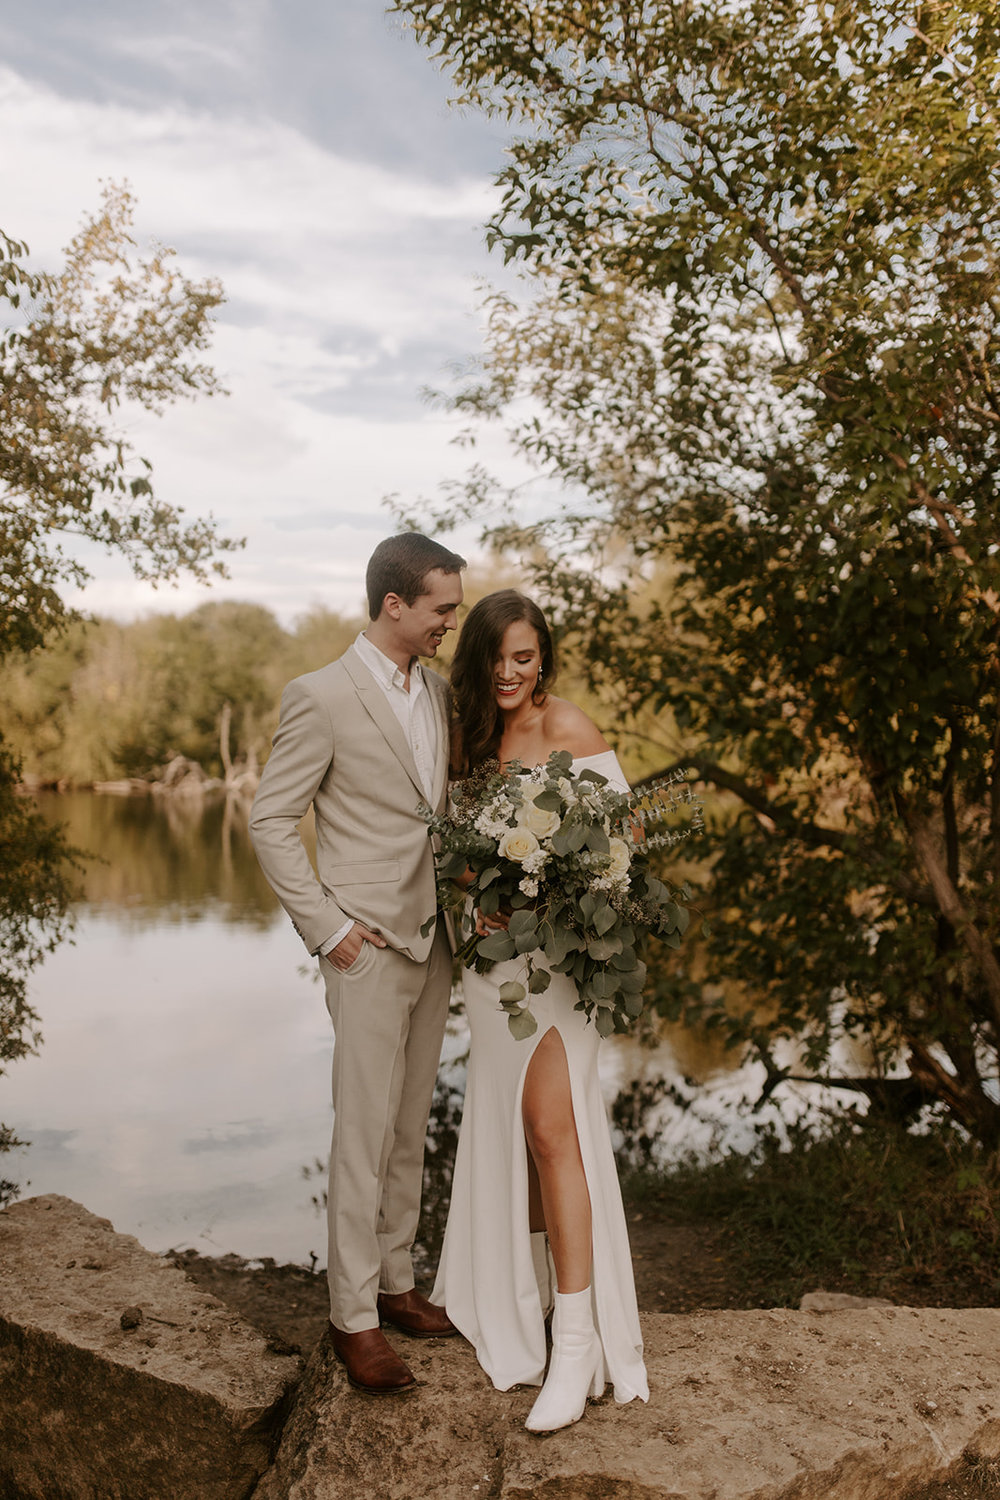 Winter-Fall Elopement- Meme Urbane Photography photos-2.jpg